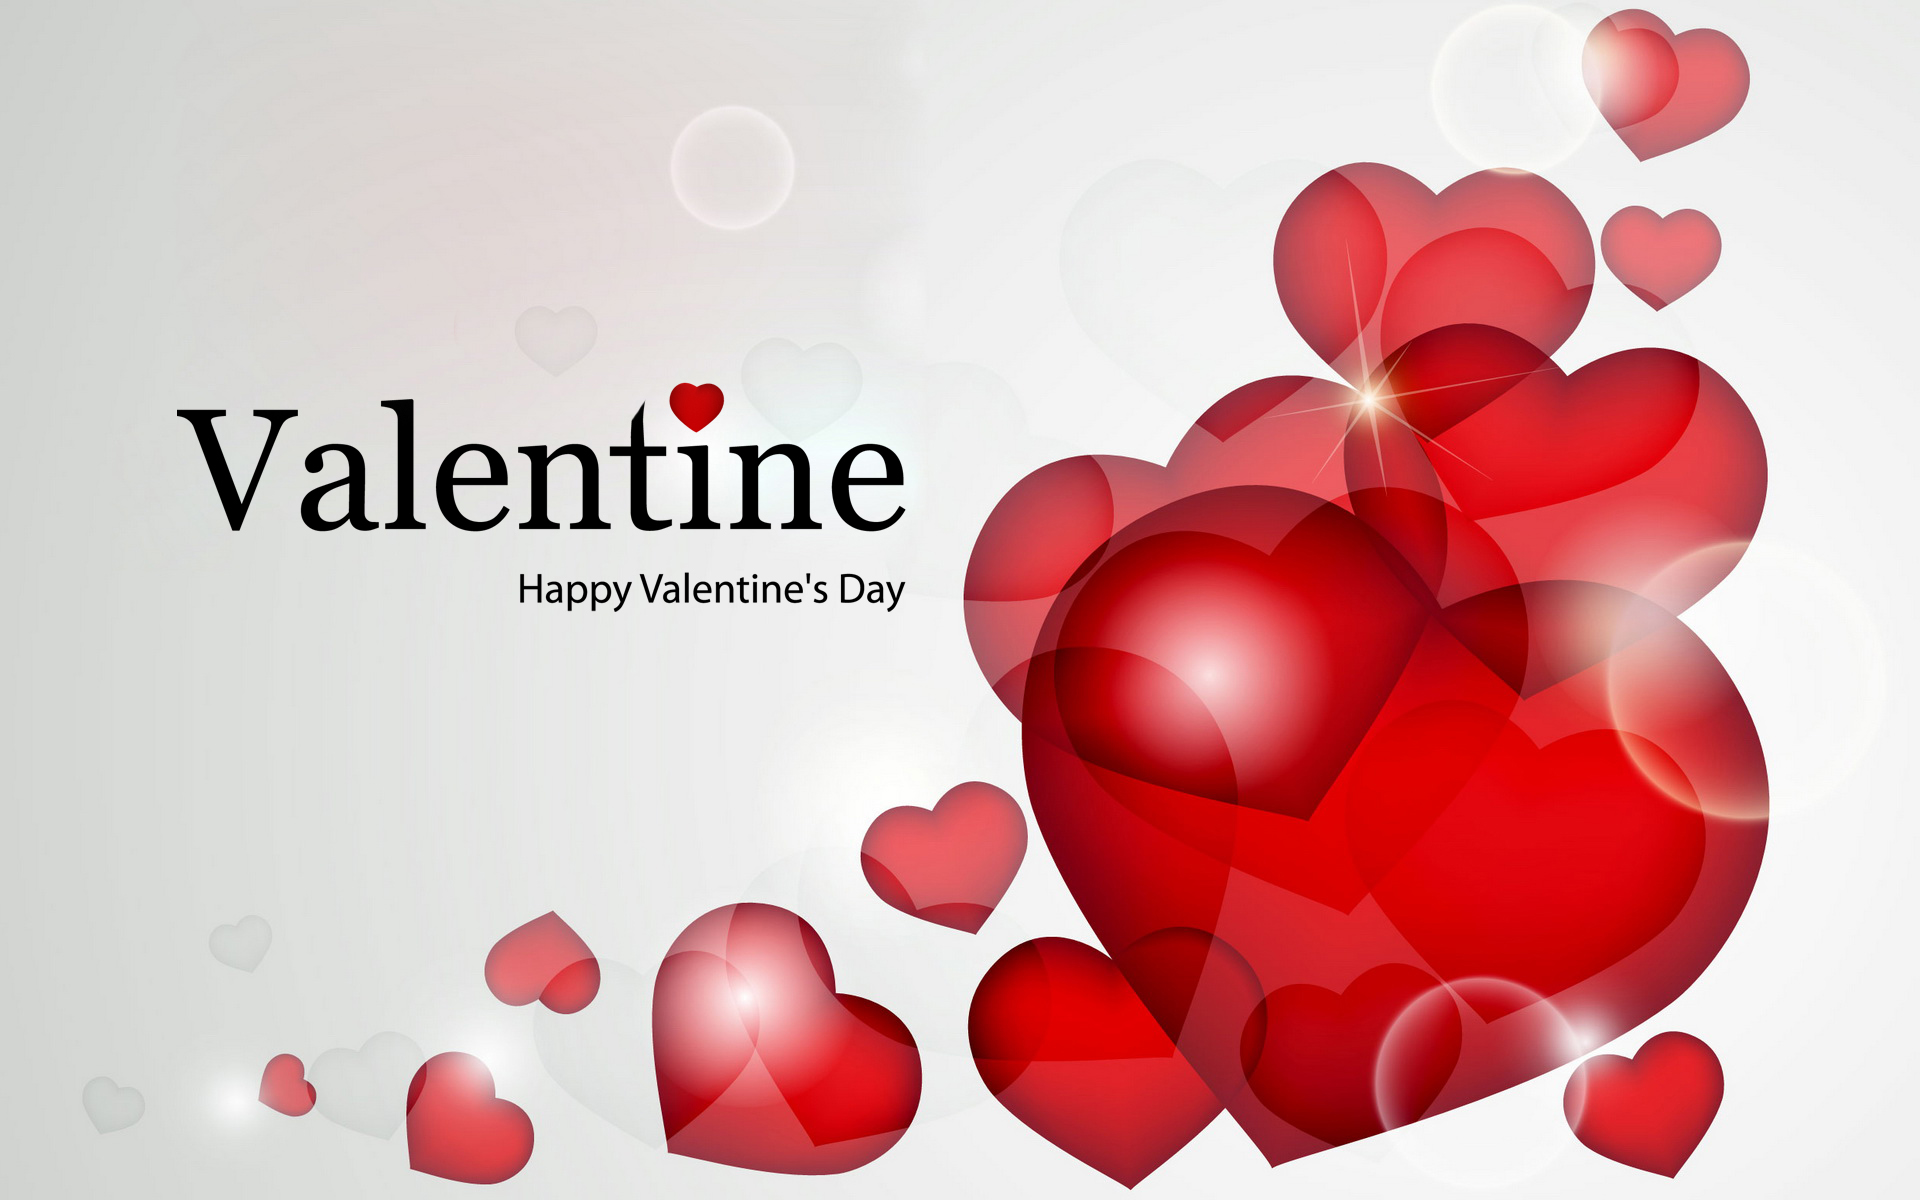 Valentines Day Wallpapers HD 14th FEB images 2020 for lovers 1920x1200